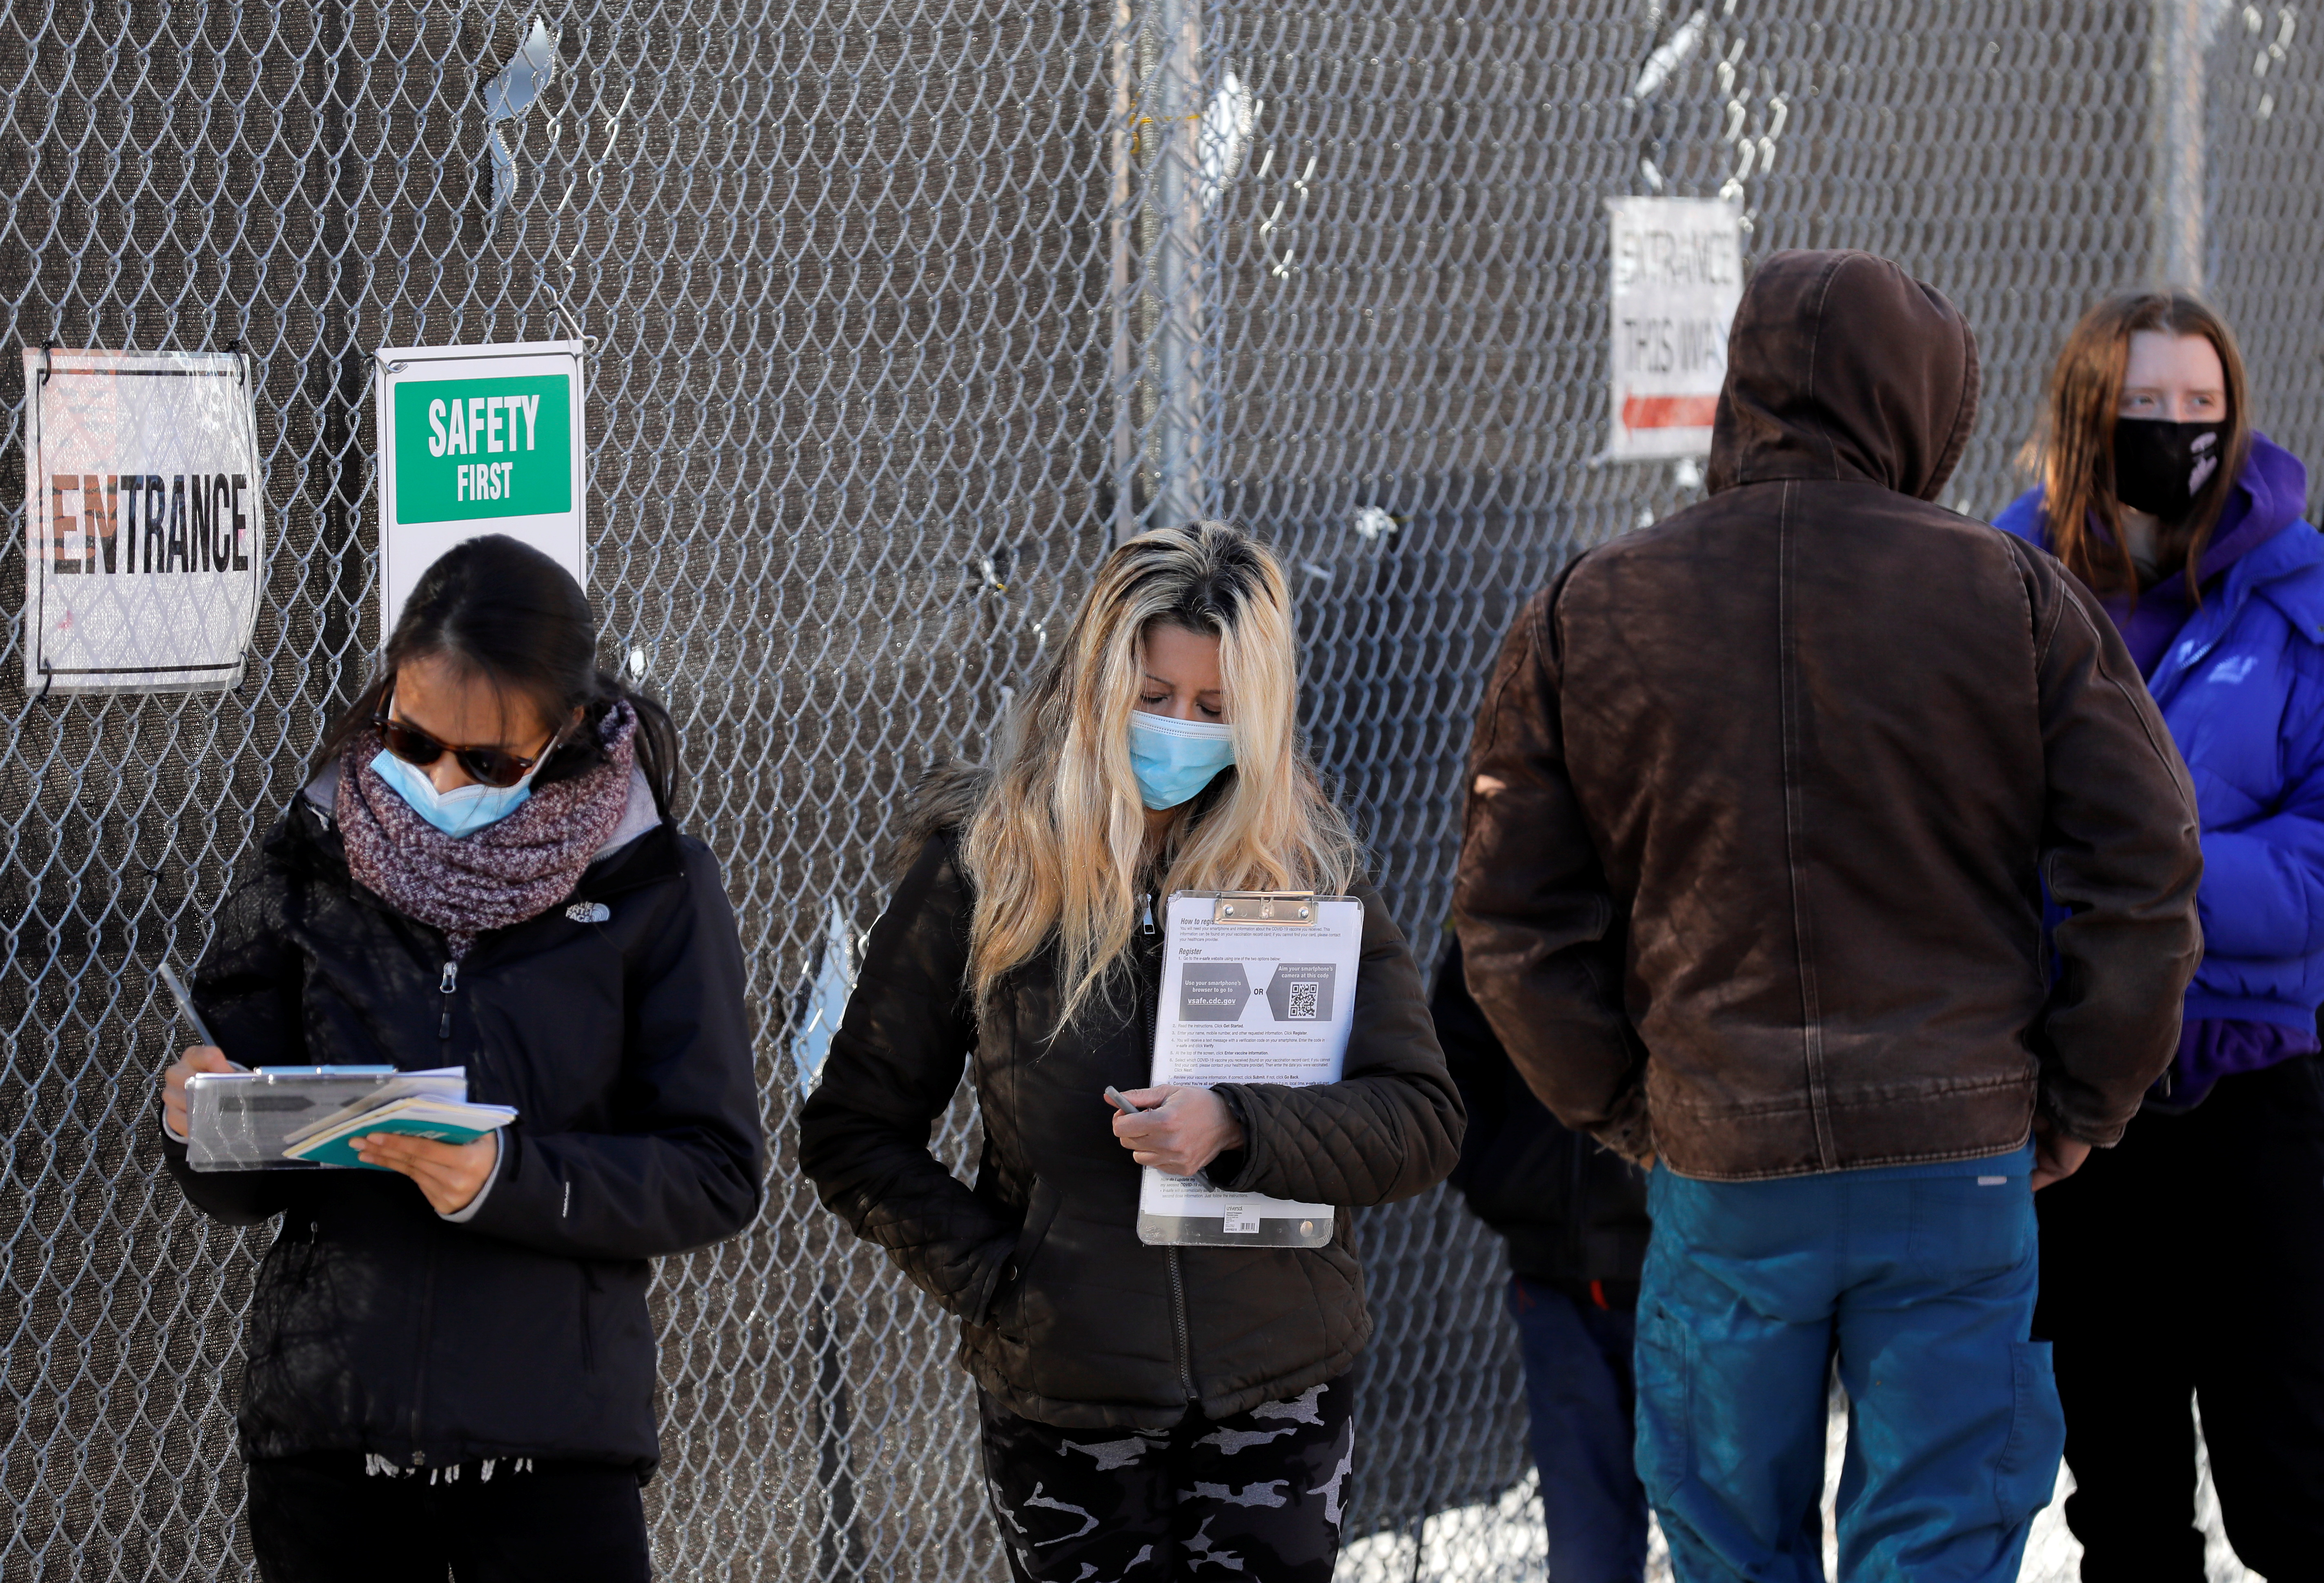 People line up to receive a dose of the coronavirus disease (COVID-19) vaccine at a mass vaccination site at Brooklyn Army Terminal in New York City, New York, U.S., January 10, 2021. REUTERS/Andrew Kelly